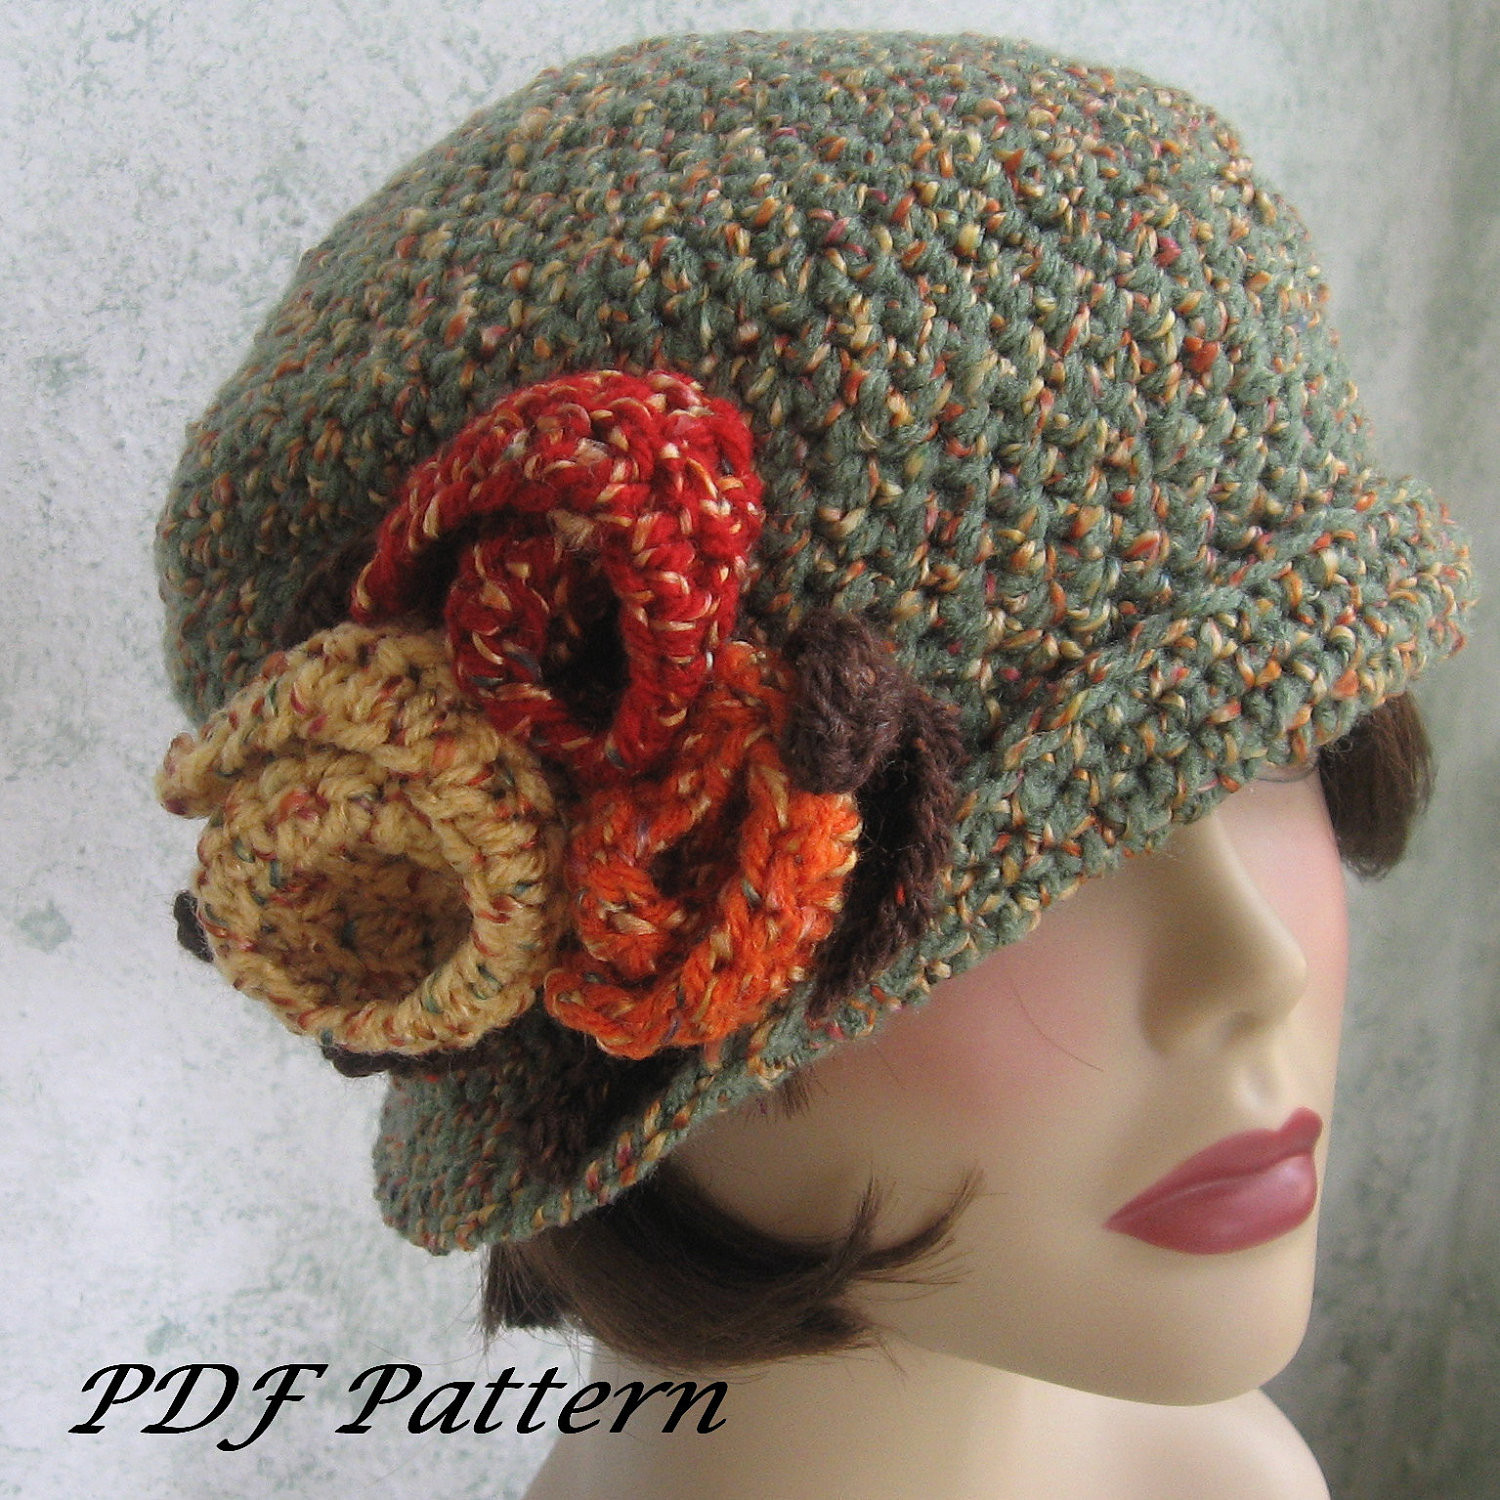 Free Vintage Crochet New Free Vintage Crochet Hat Patterns Of Amazing 50 Images Free Vintage Crochet